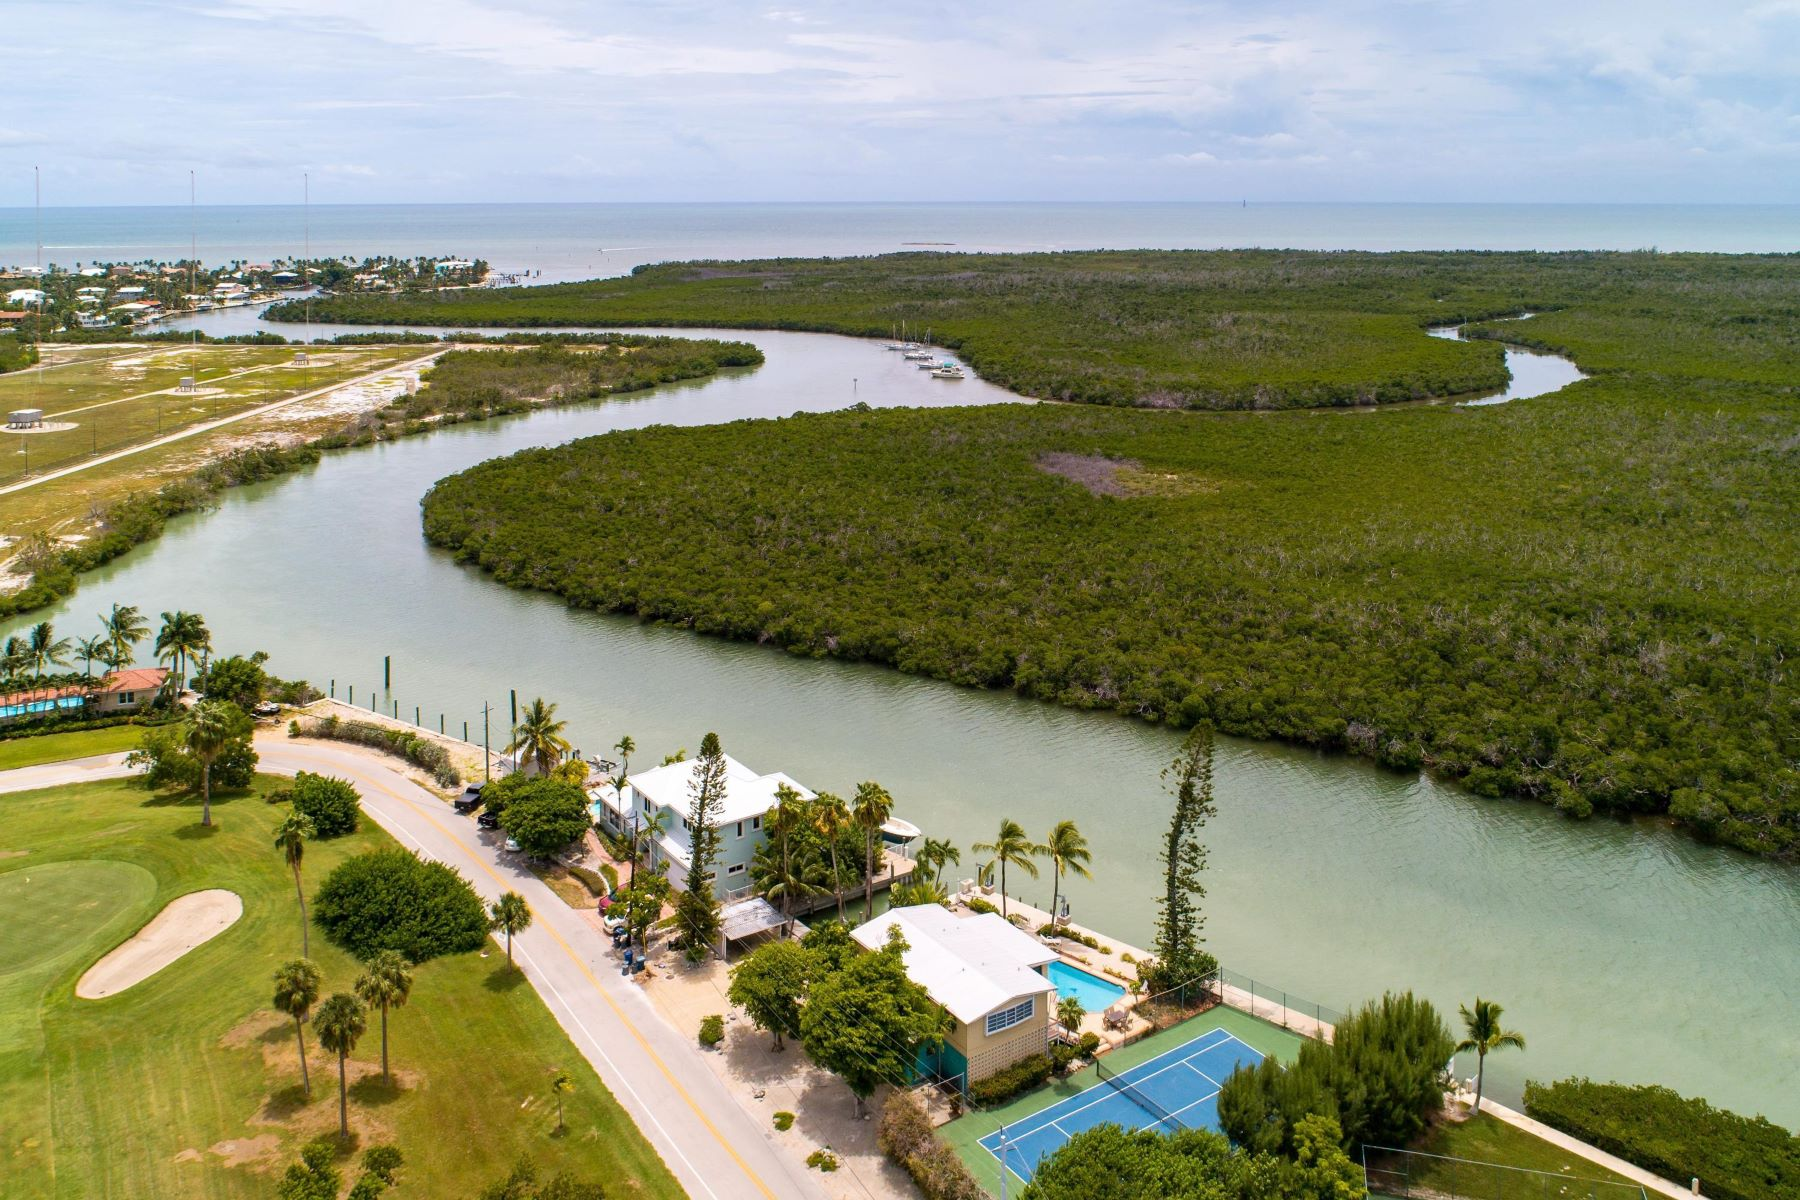 Duplex Homes for Sale at 1801 Sombrero Boulevard, Marathon, FL 1801 Sombrero Boulevard Marathon, Florida 33050 United States